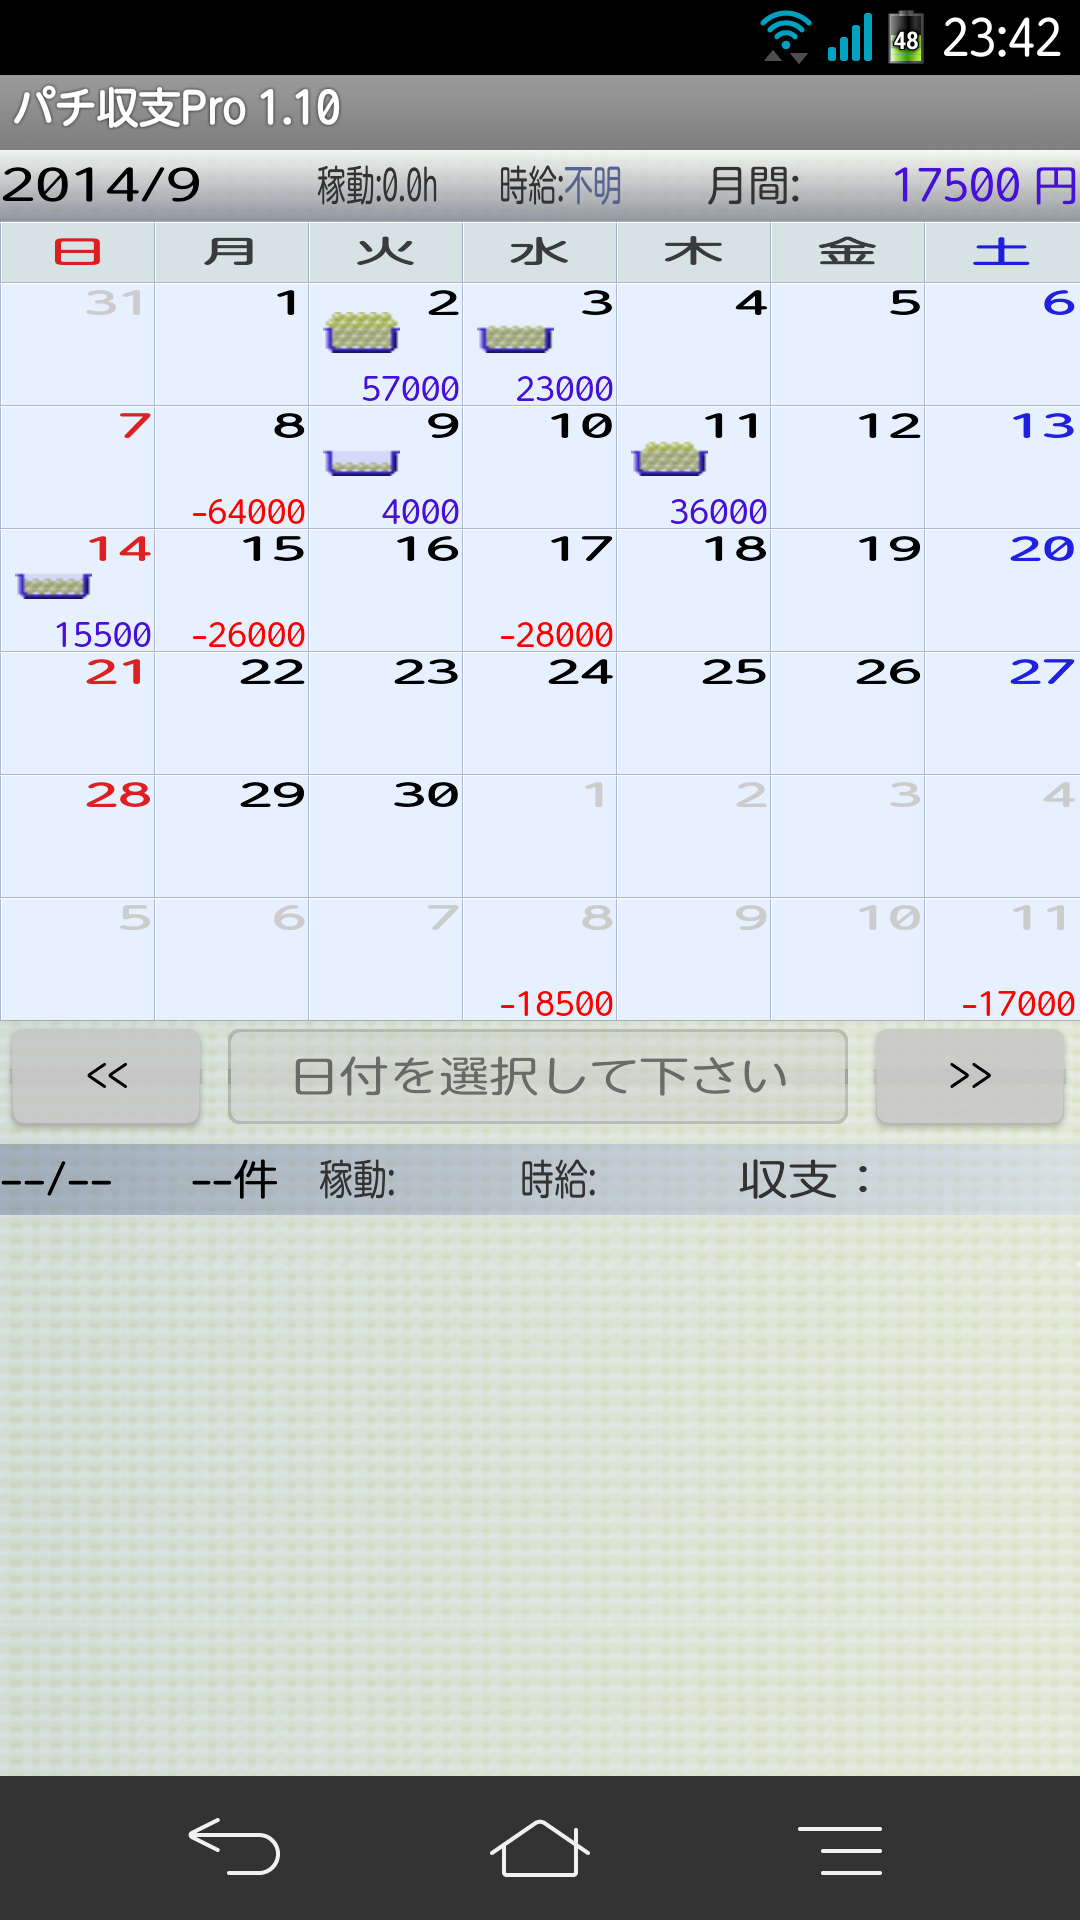 Screenshot_2014-11-01-23-42-39.png